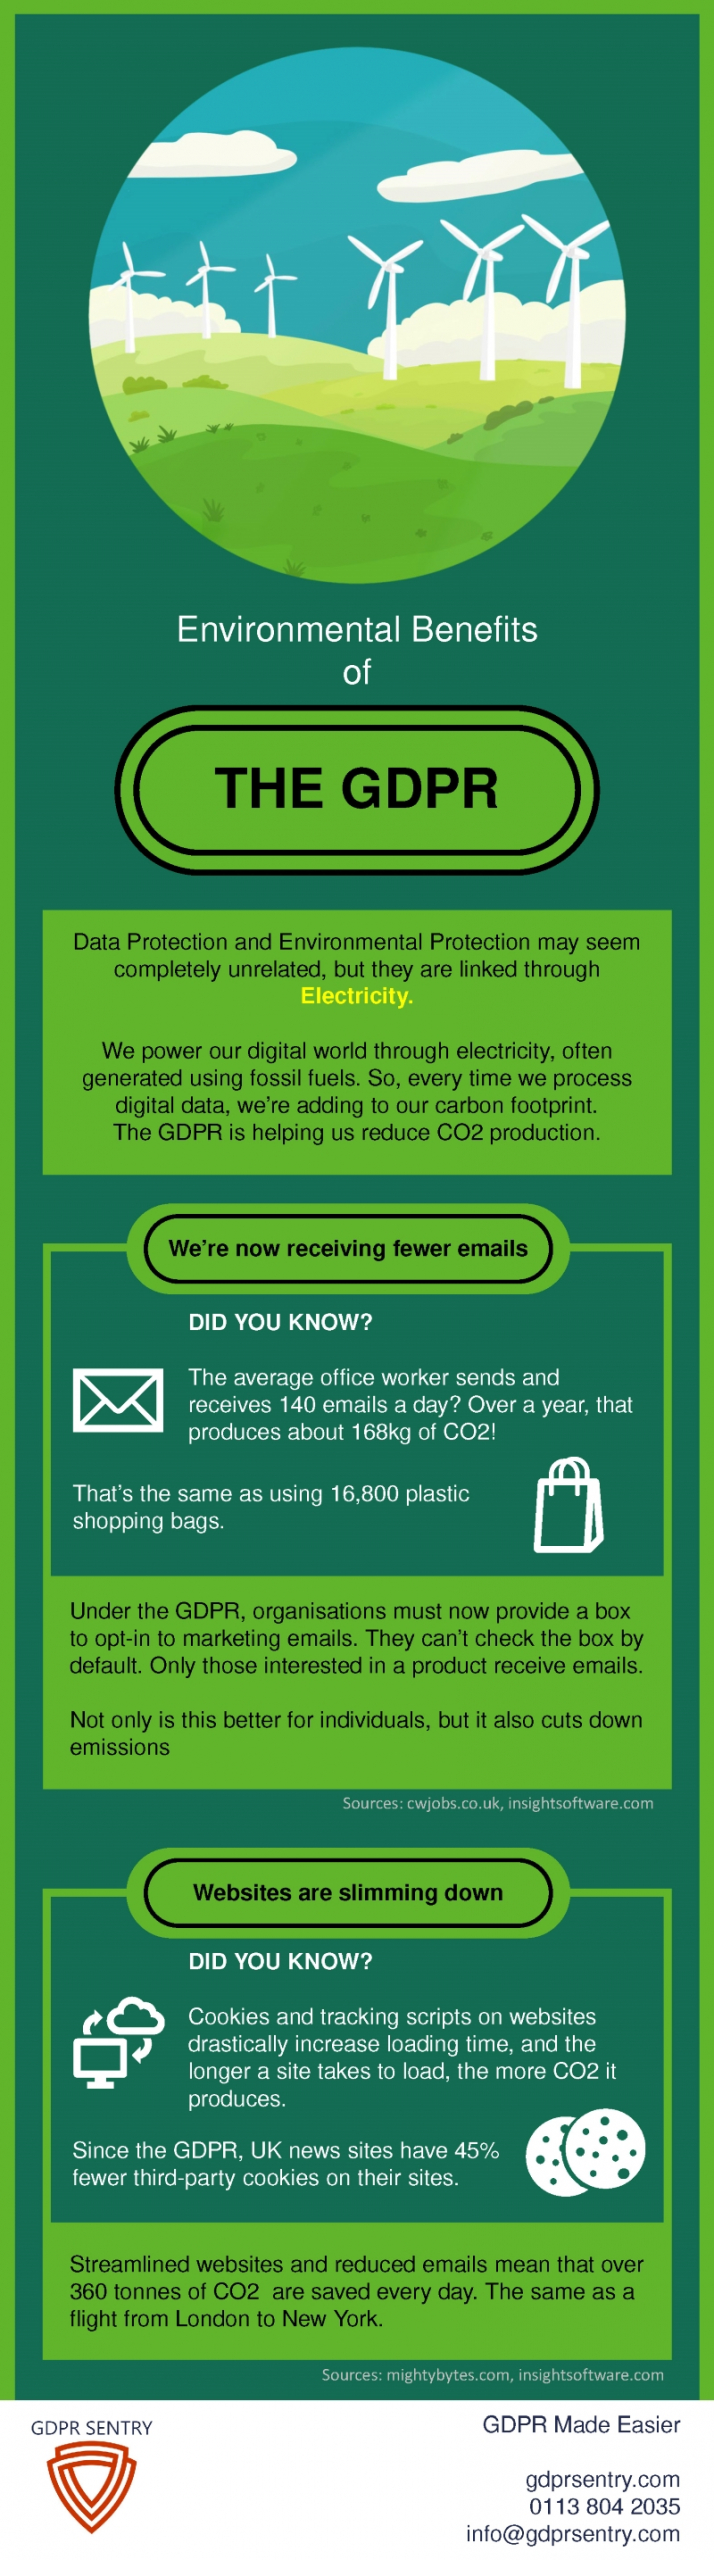 """Infographic: Environmental Benefits of the GDPR. simple image of green hills with wind turbines. Underneath a green box text states """"Data Protection and Environmental Protection may seem completely unrelated, but they are linked through Electricity. We power our digital world through electricity, often generated using fossil fuels. So, every time we process digital data, we're adding to our carbon footprint. The GDPR is helping us reduce CO2 production.""""."""